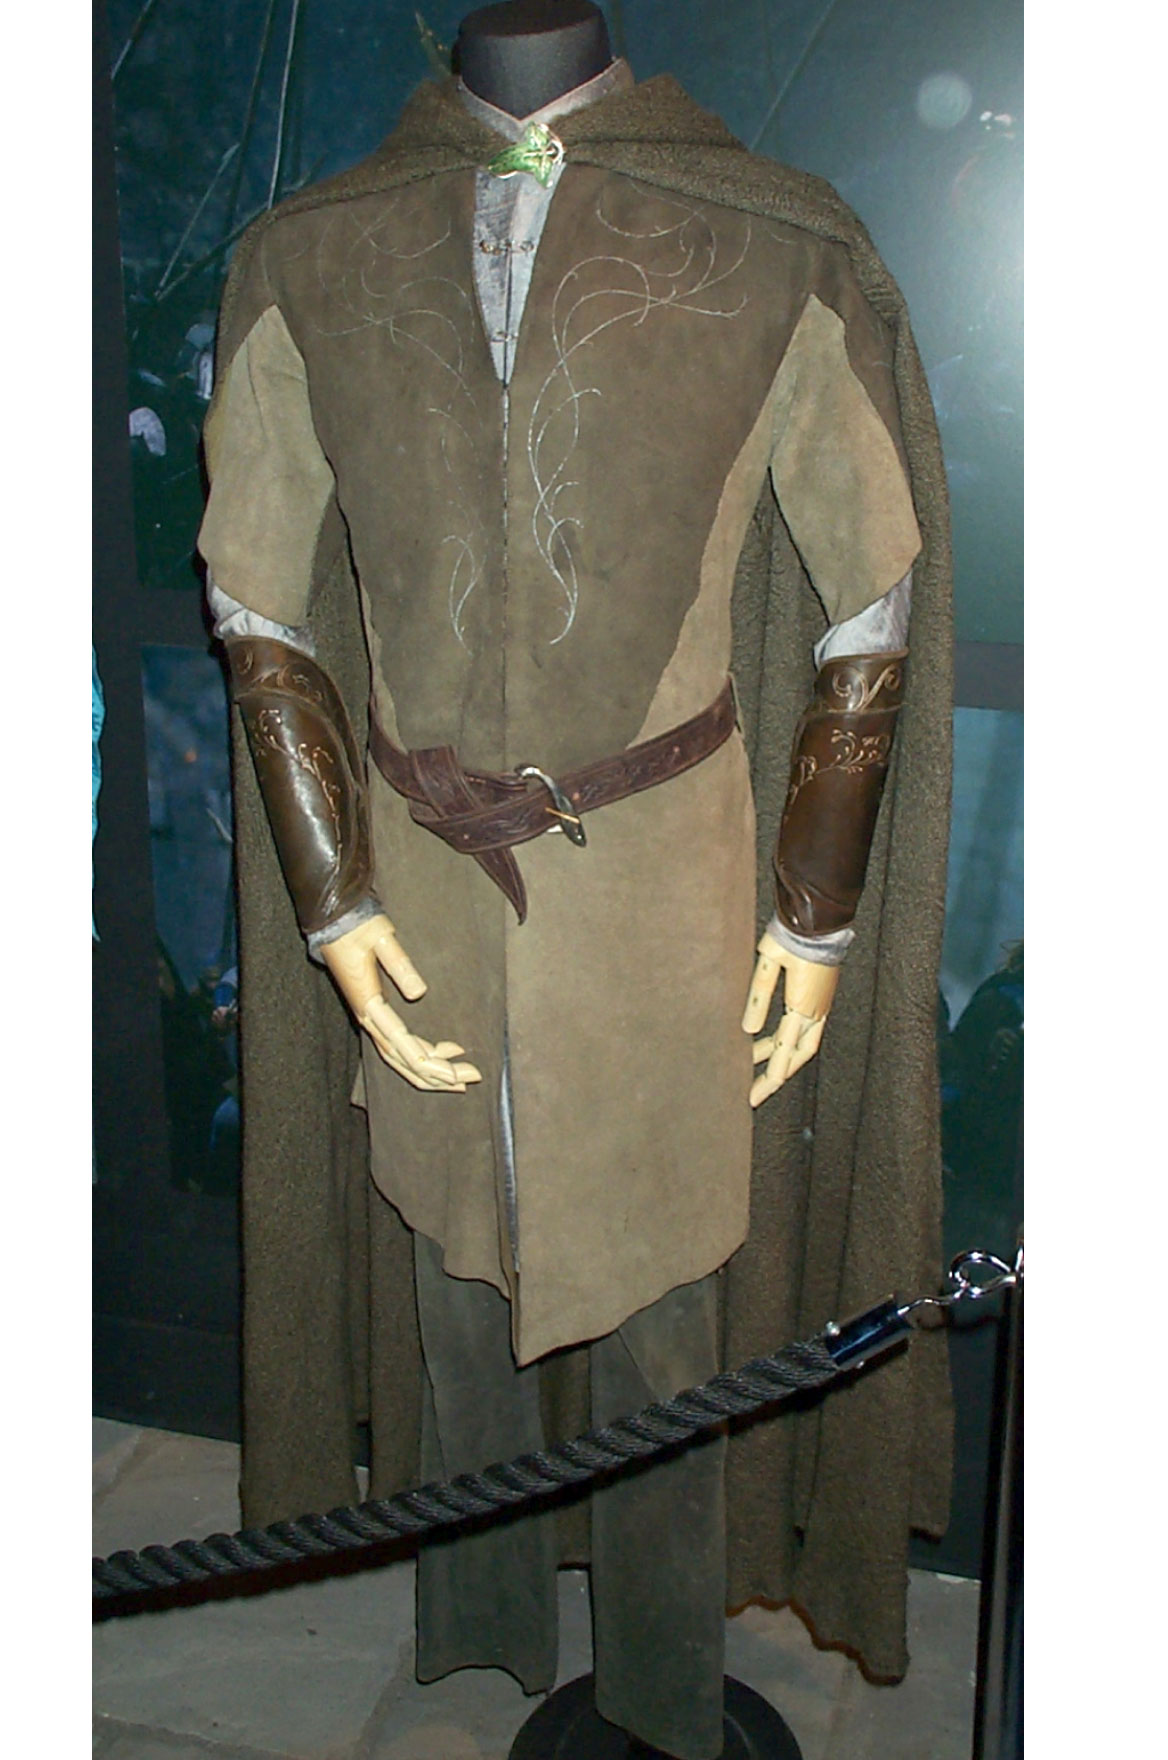 legolas legging outfits and cloaks on pinterest